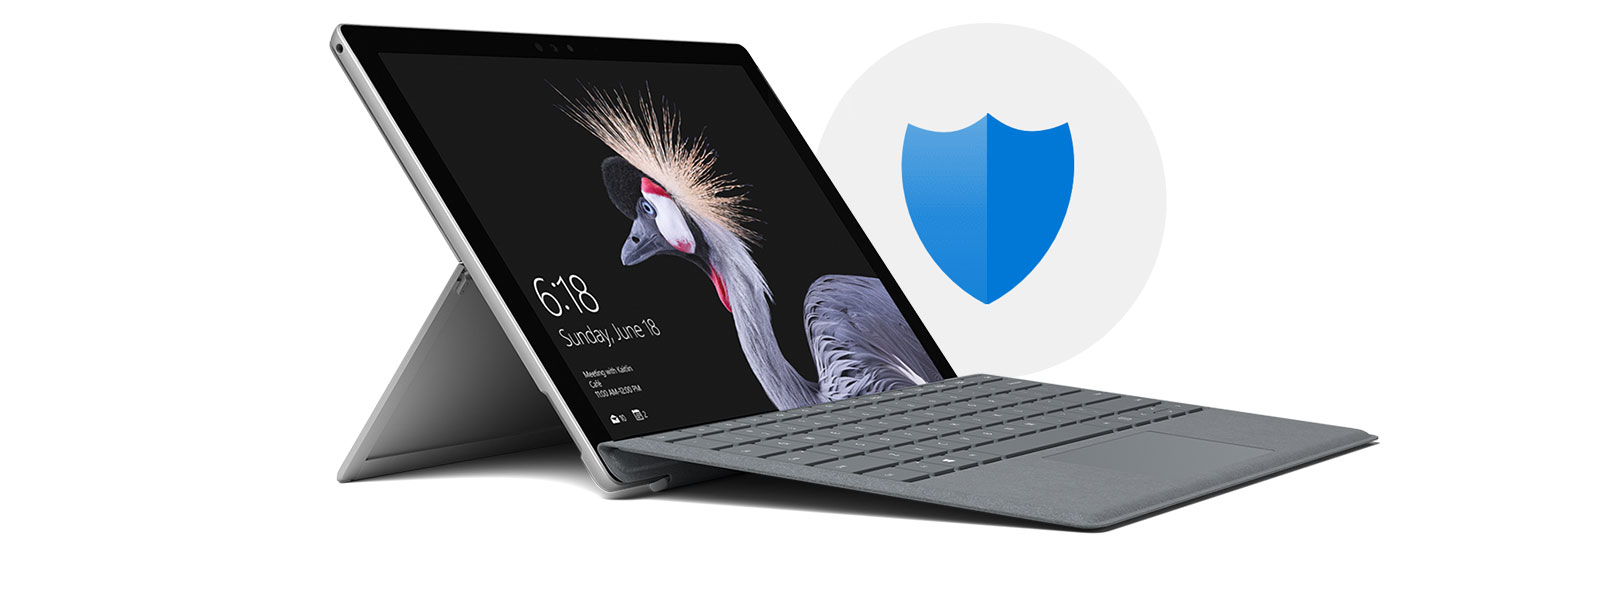 Surface Pro in laptop mode with start screen, facing right and with a security protection icon in the background.